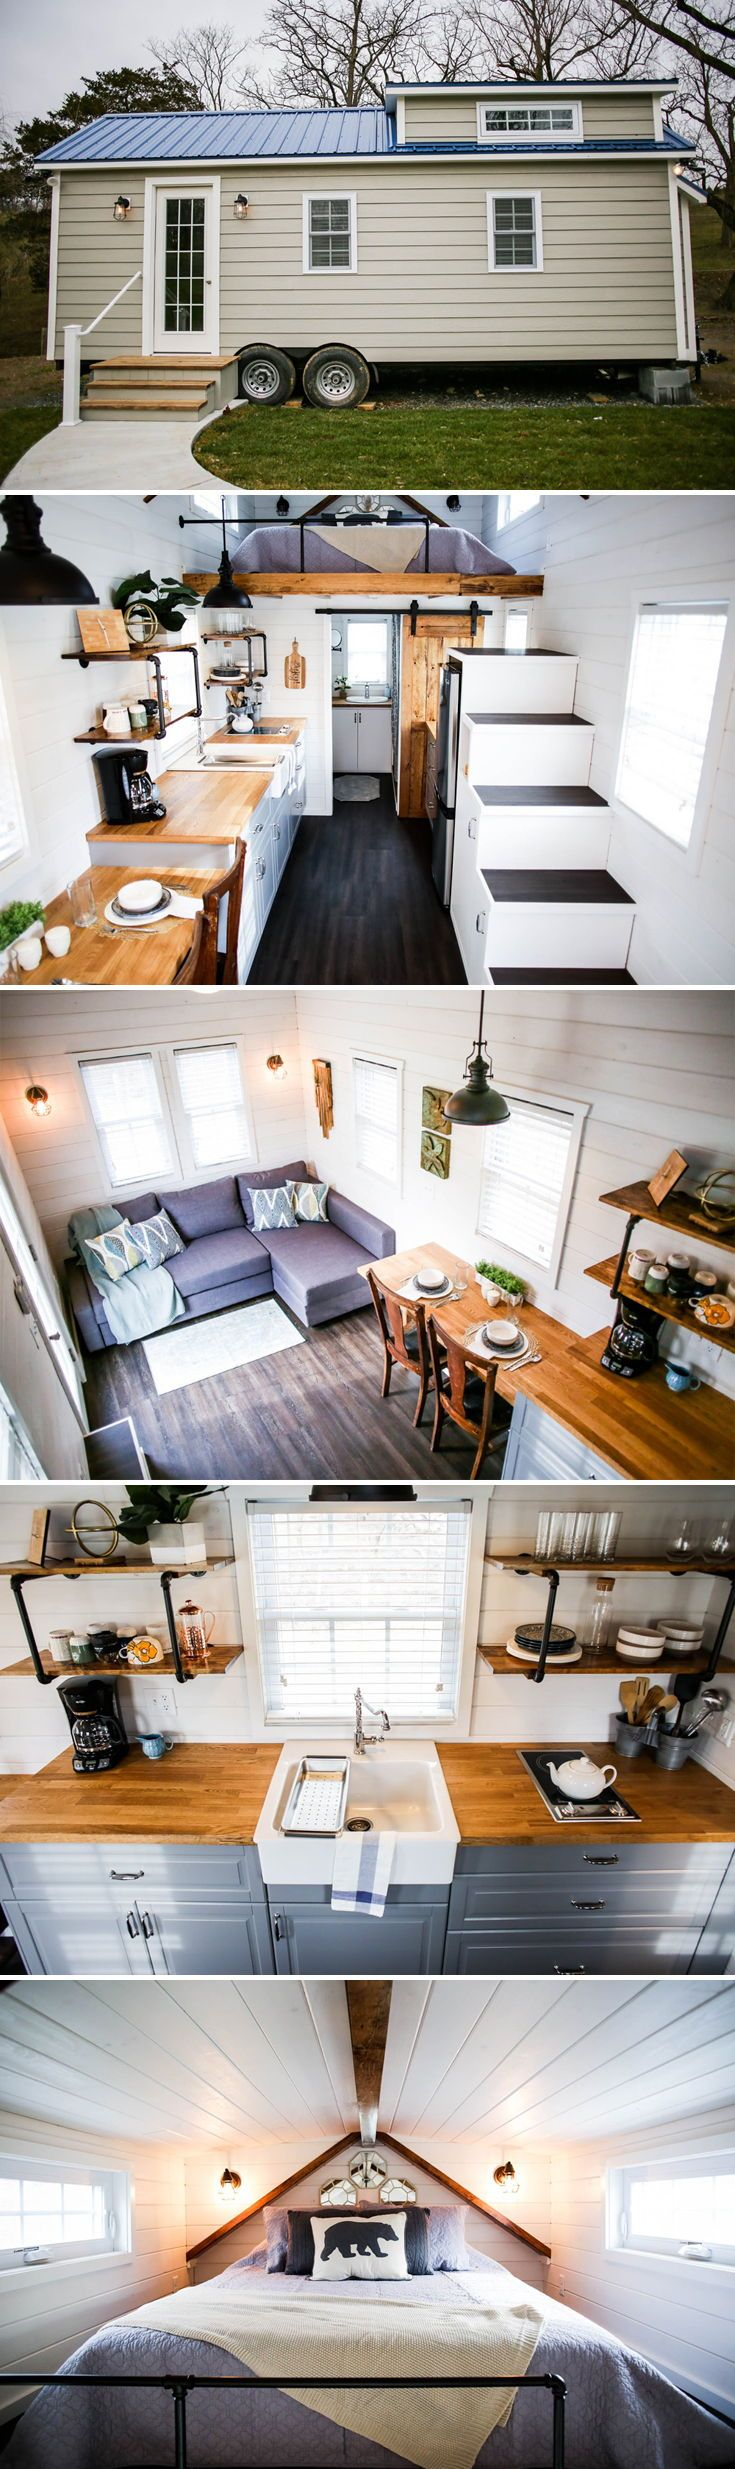 Modern Take Two by Liberation Tiny Homes - Tiny Living #tinyhouses